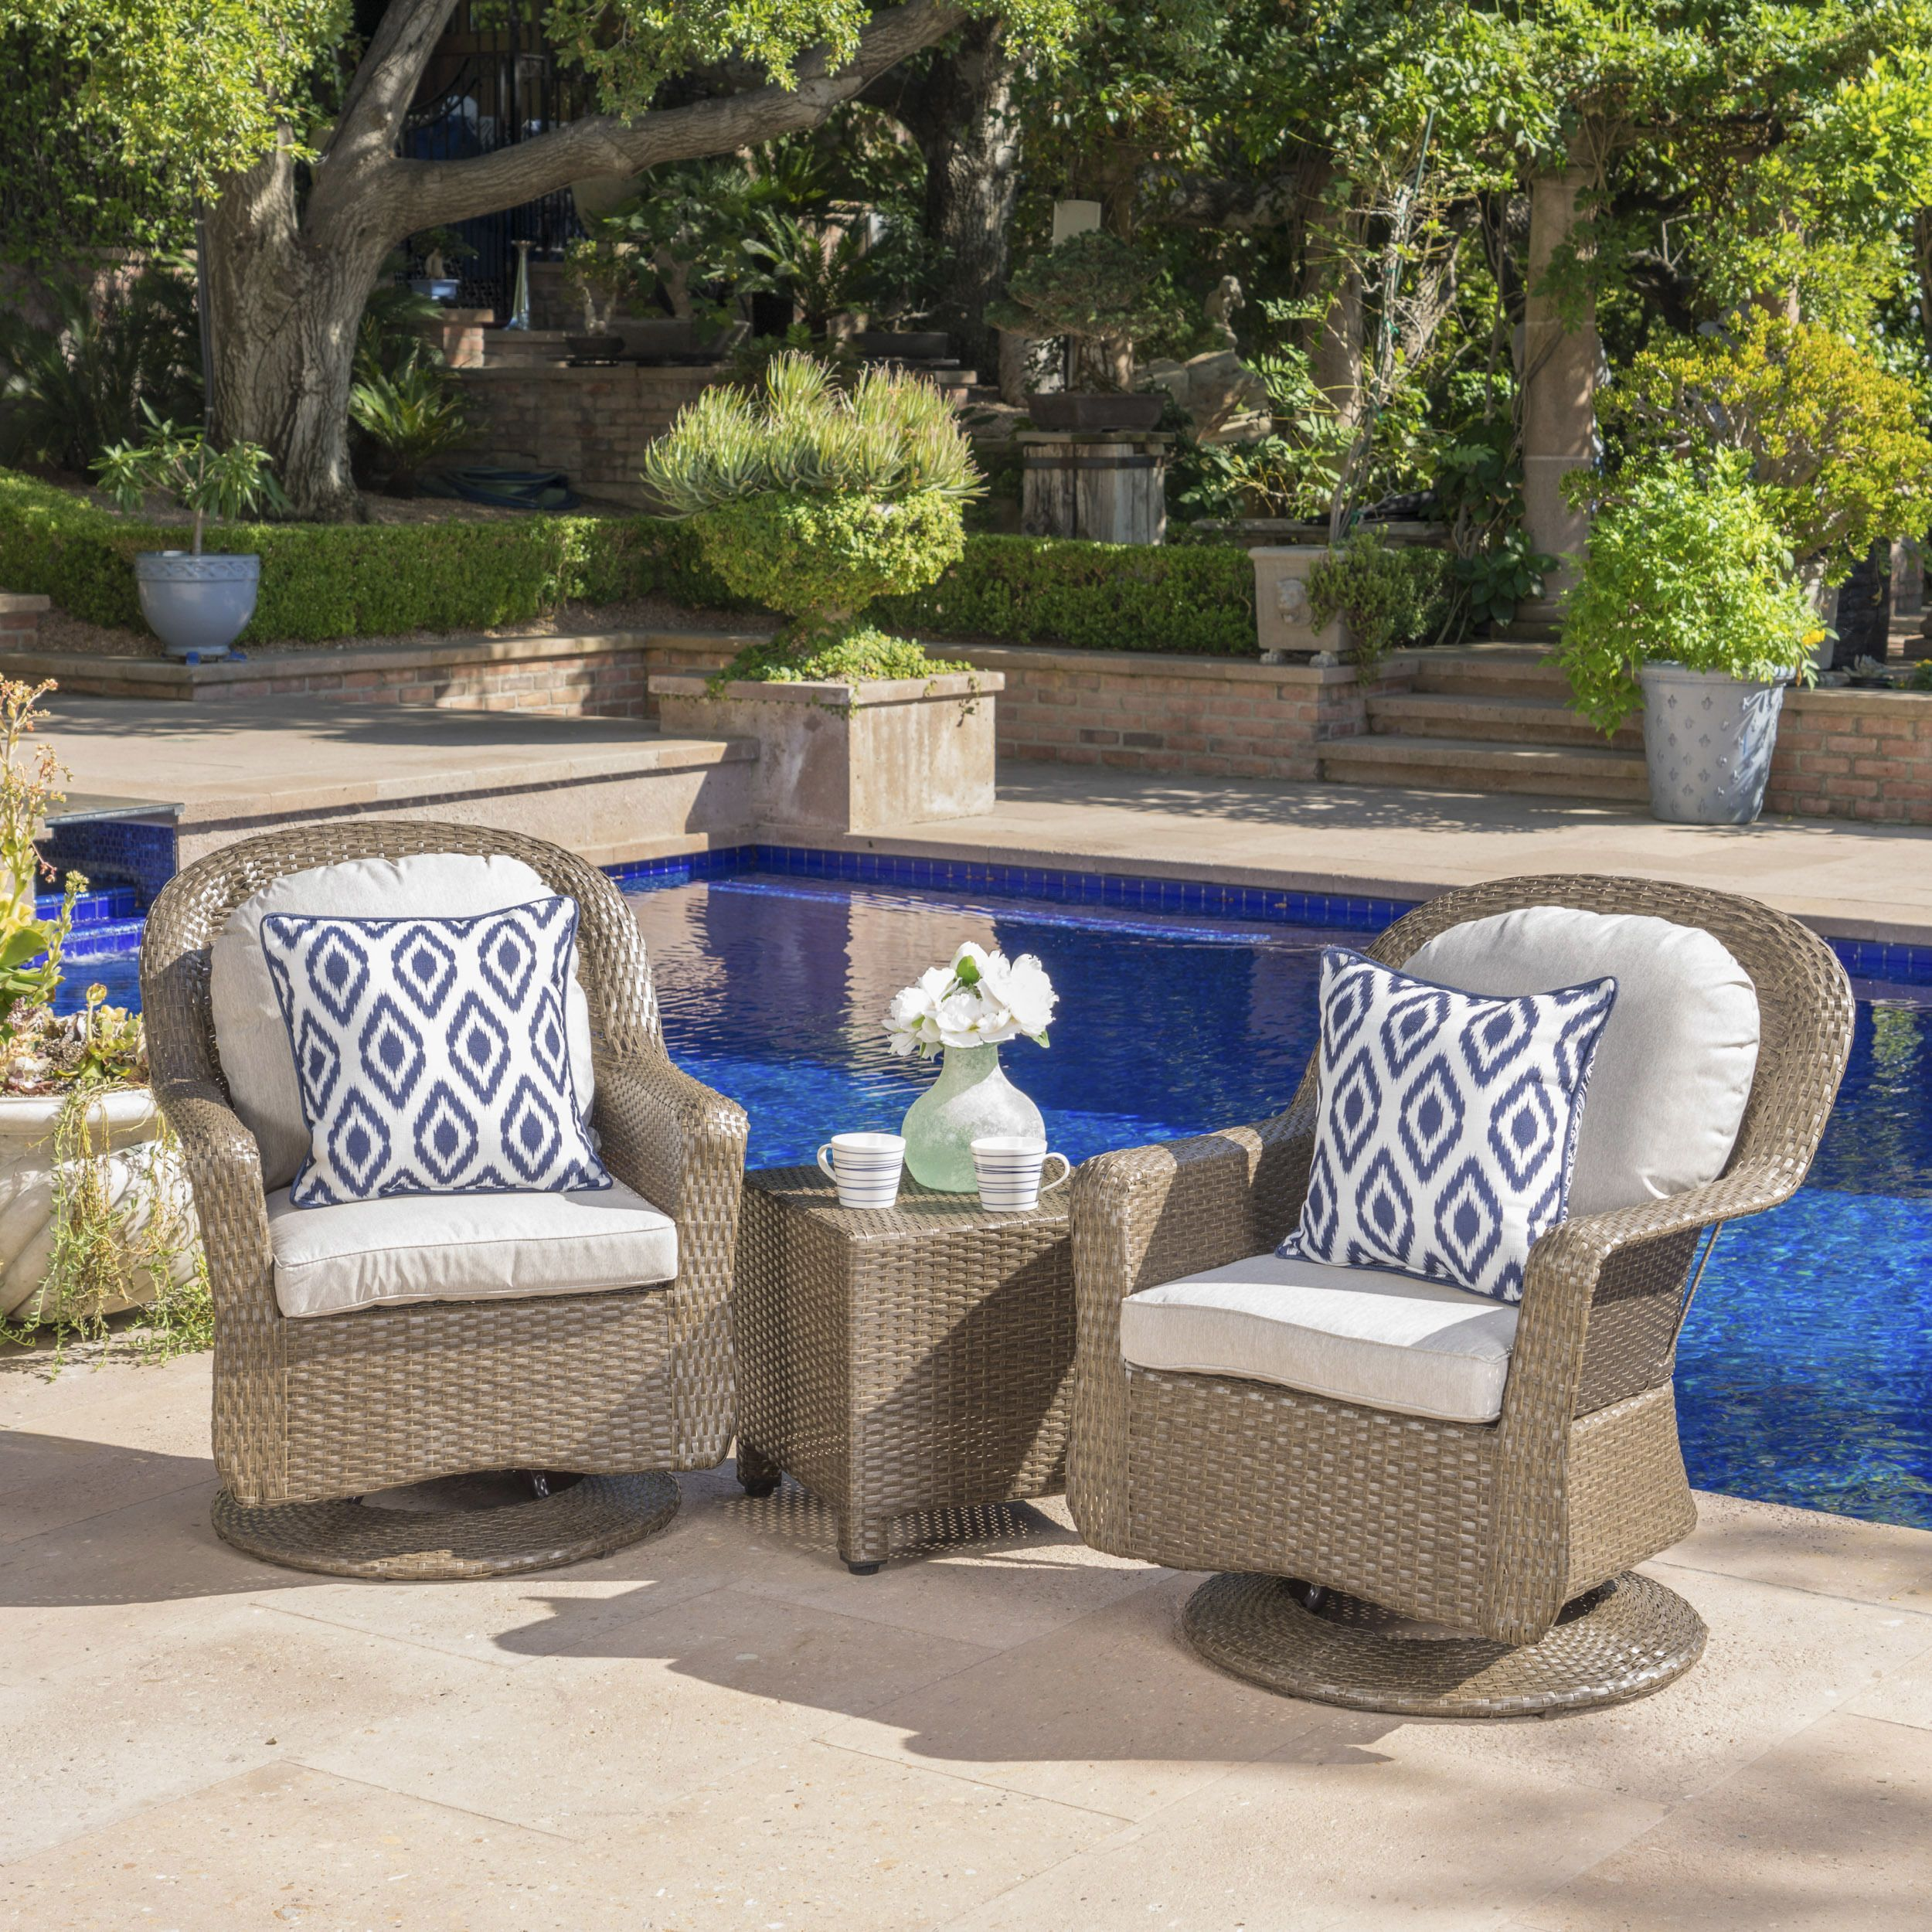 Buy Outdoor Sofas Chairs Sectionals Online At Overstock Our Best Patio Furniture Deals Lounge Chair Outdoor Patio Furniture Deals Swivel Club Chairs